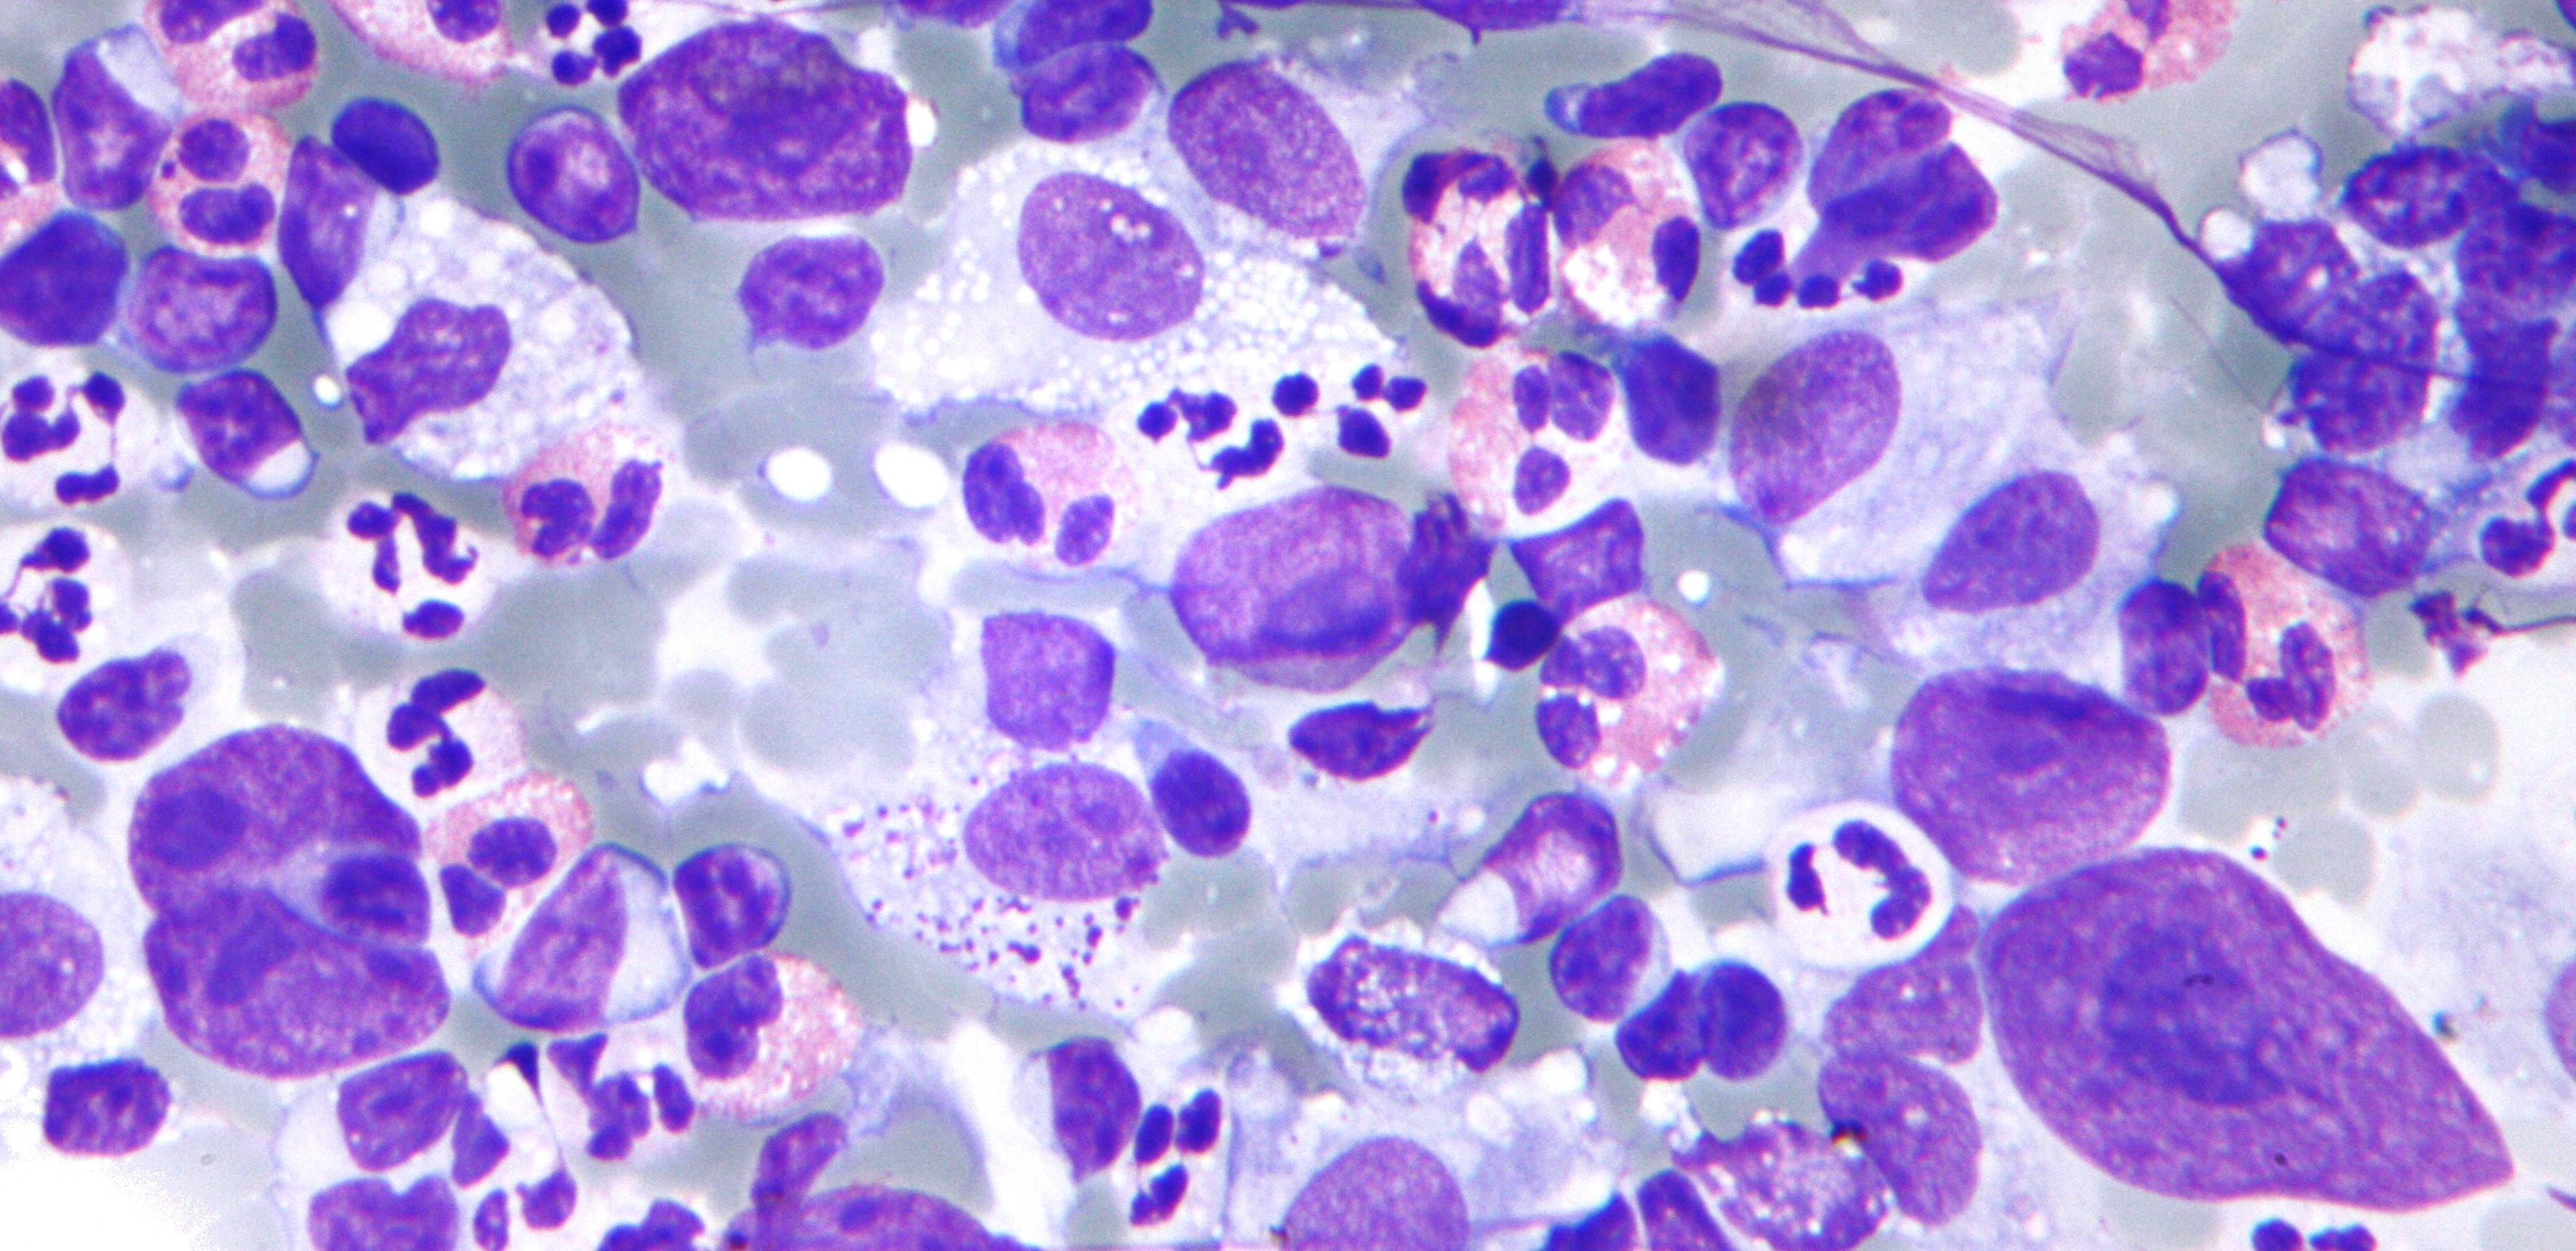 Information About Cytology